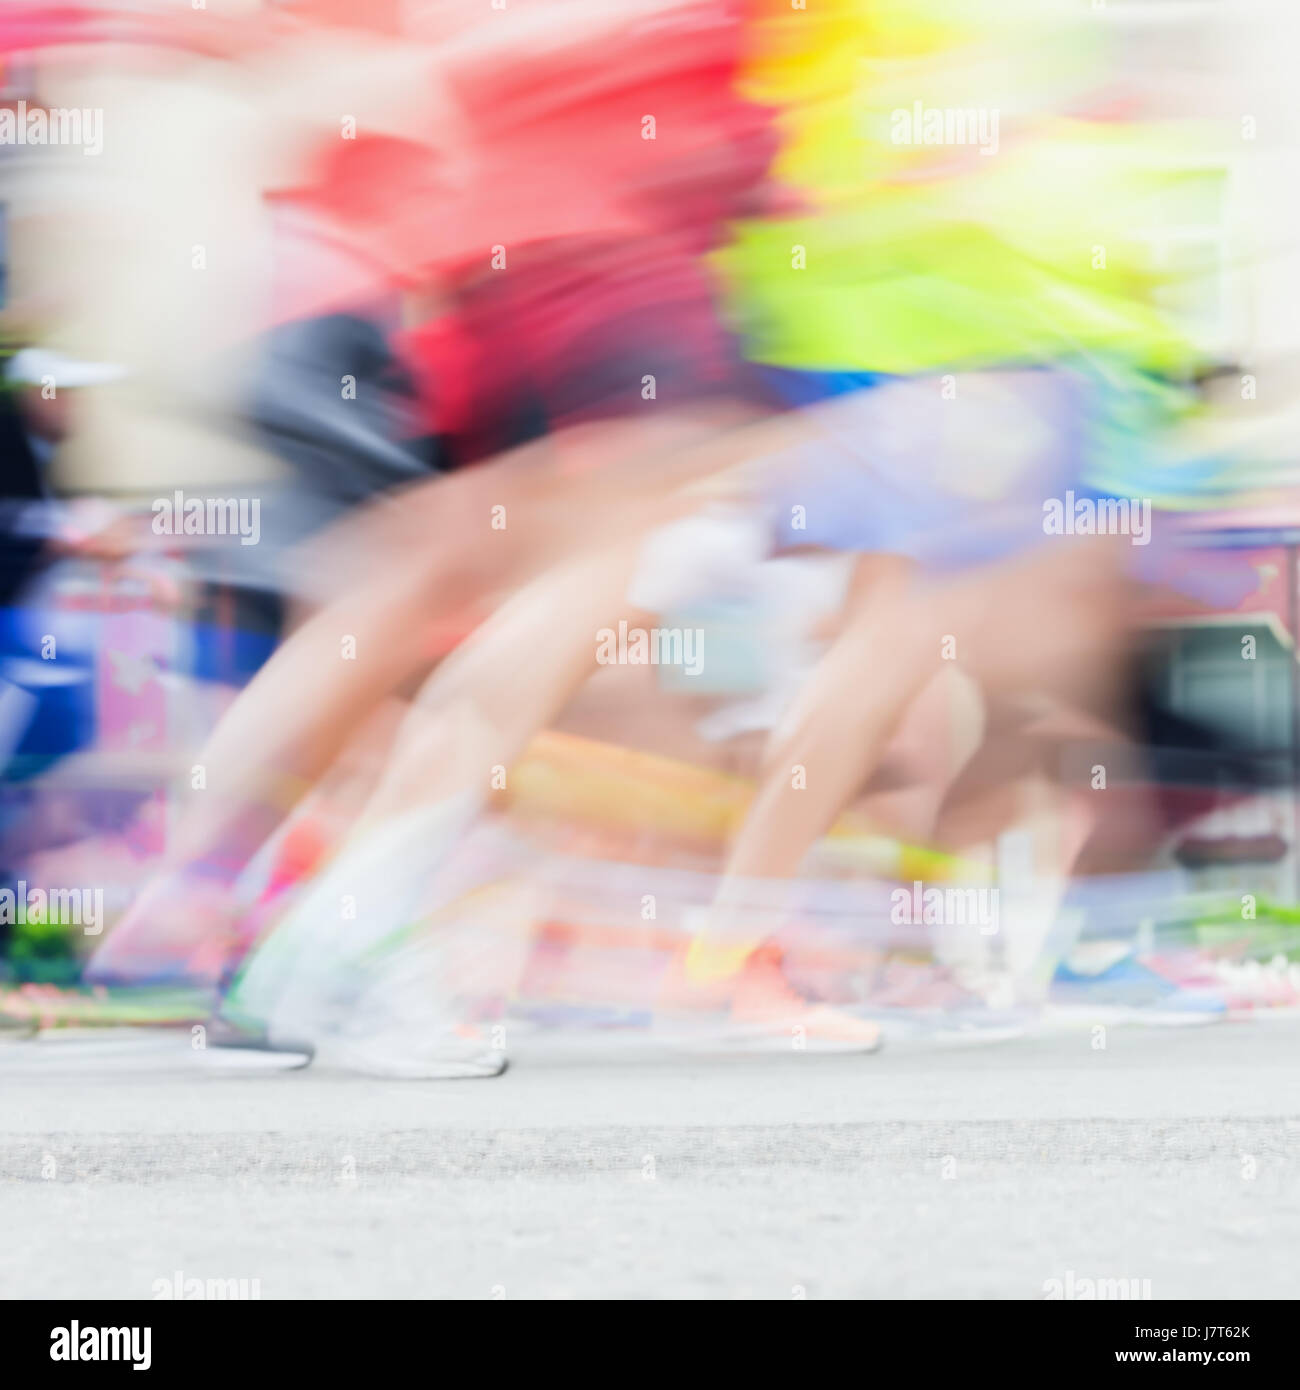 Abstract blurred sport background of colorful running feet and legs of runners during marathon on city streets. - Stock Image